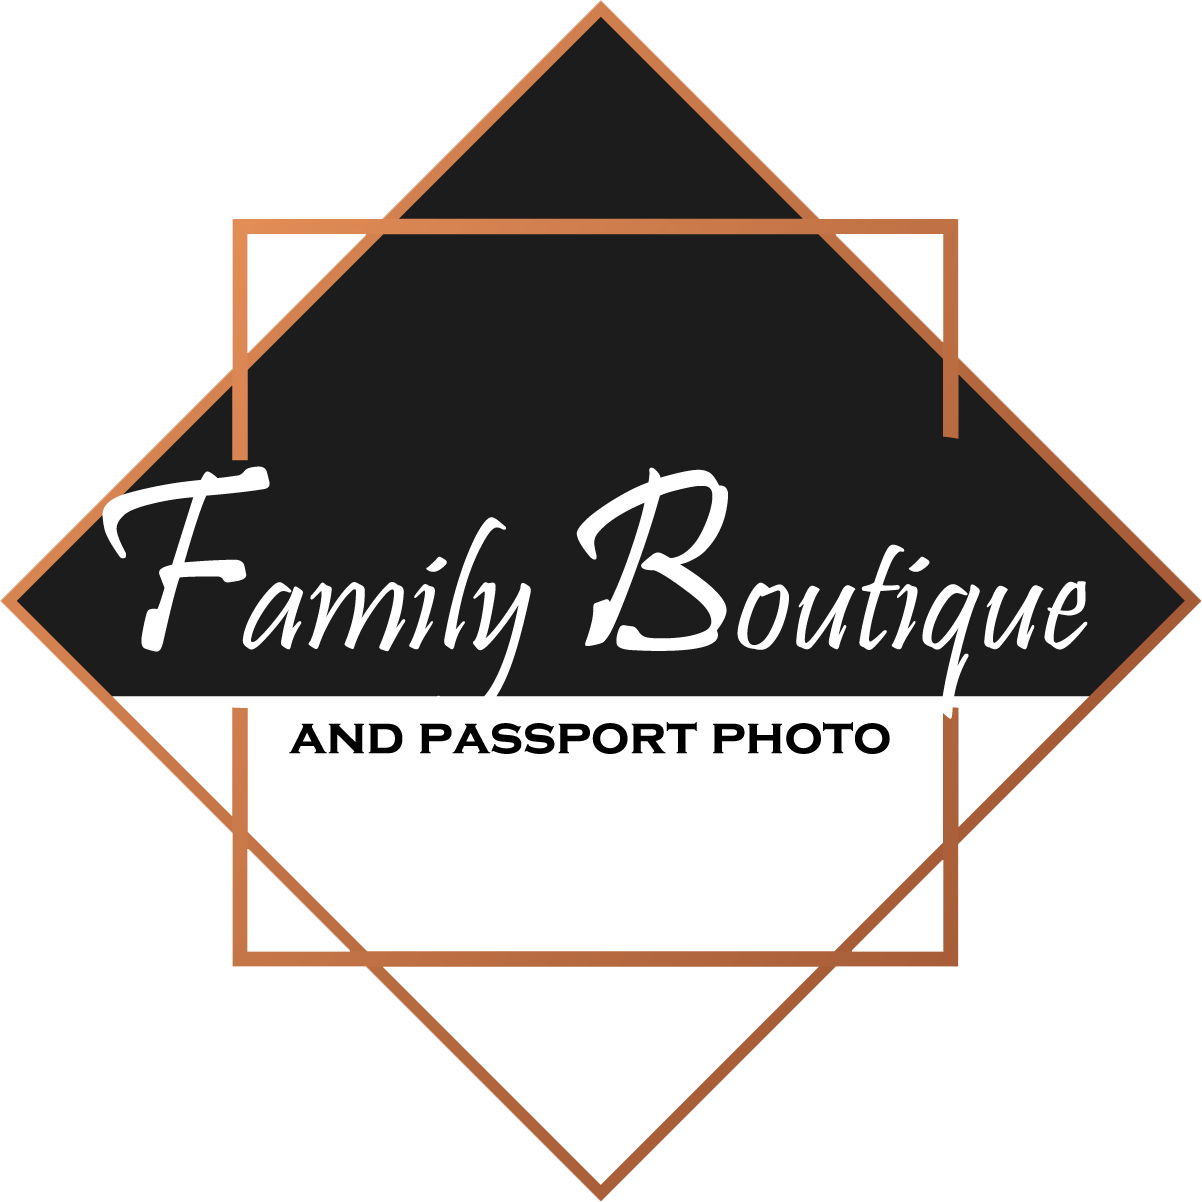 Family Boutique and Passport Photo